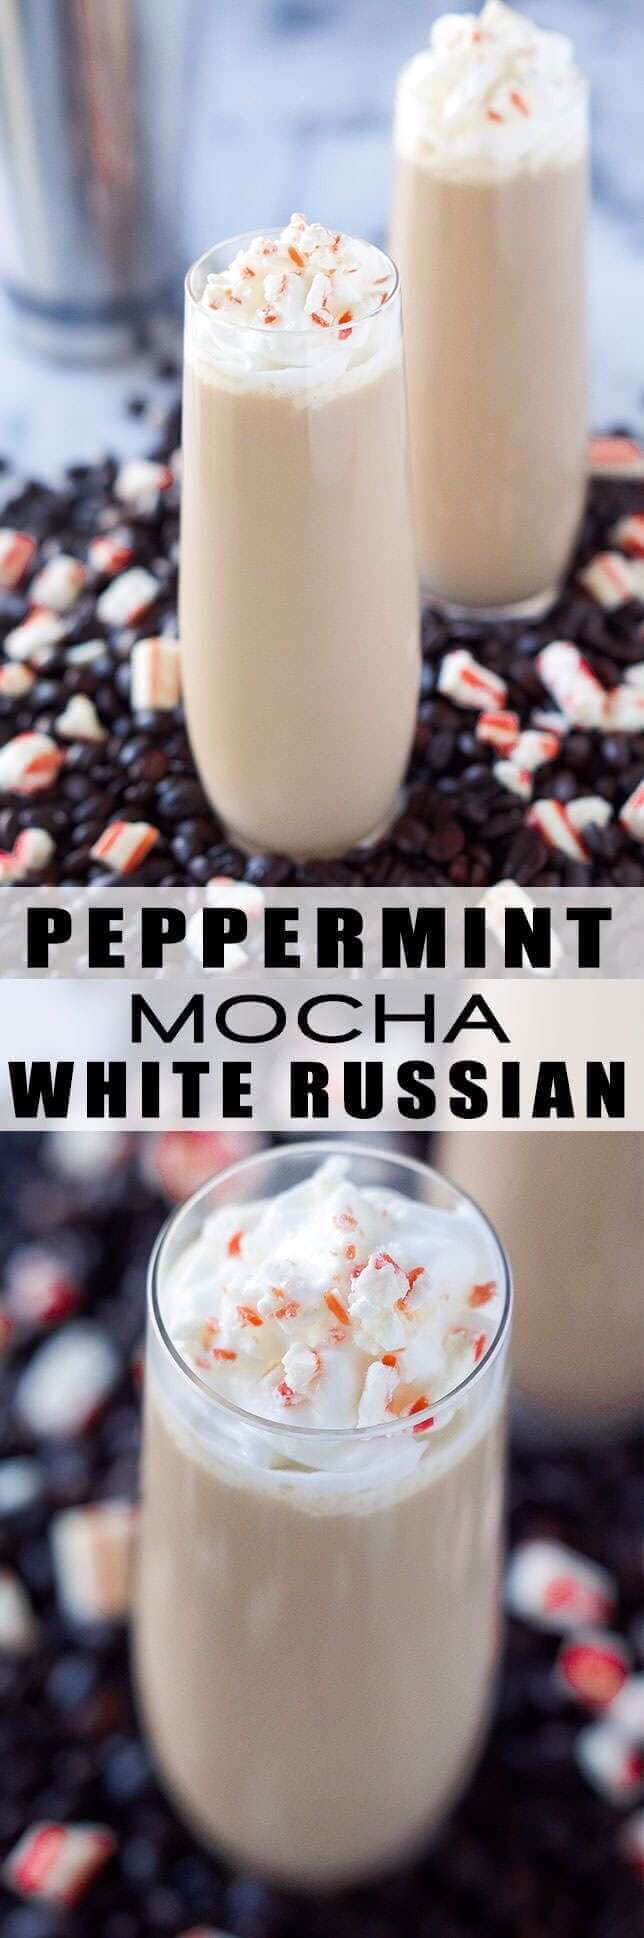 Peppermint Mocha White Russian